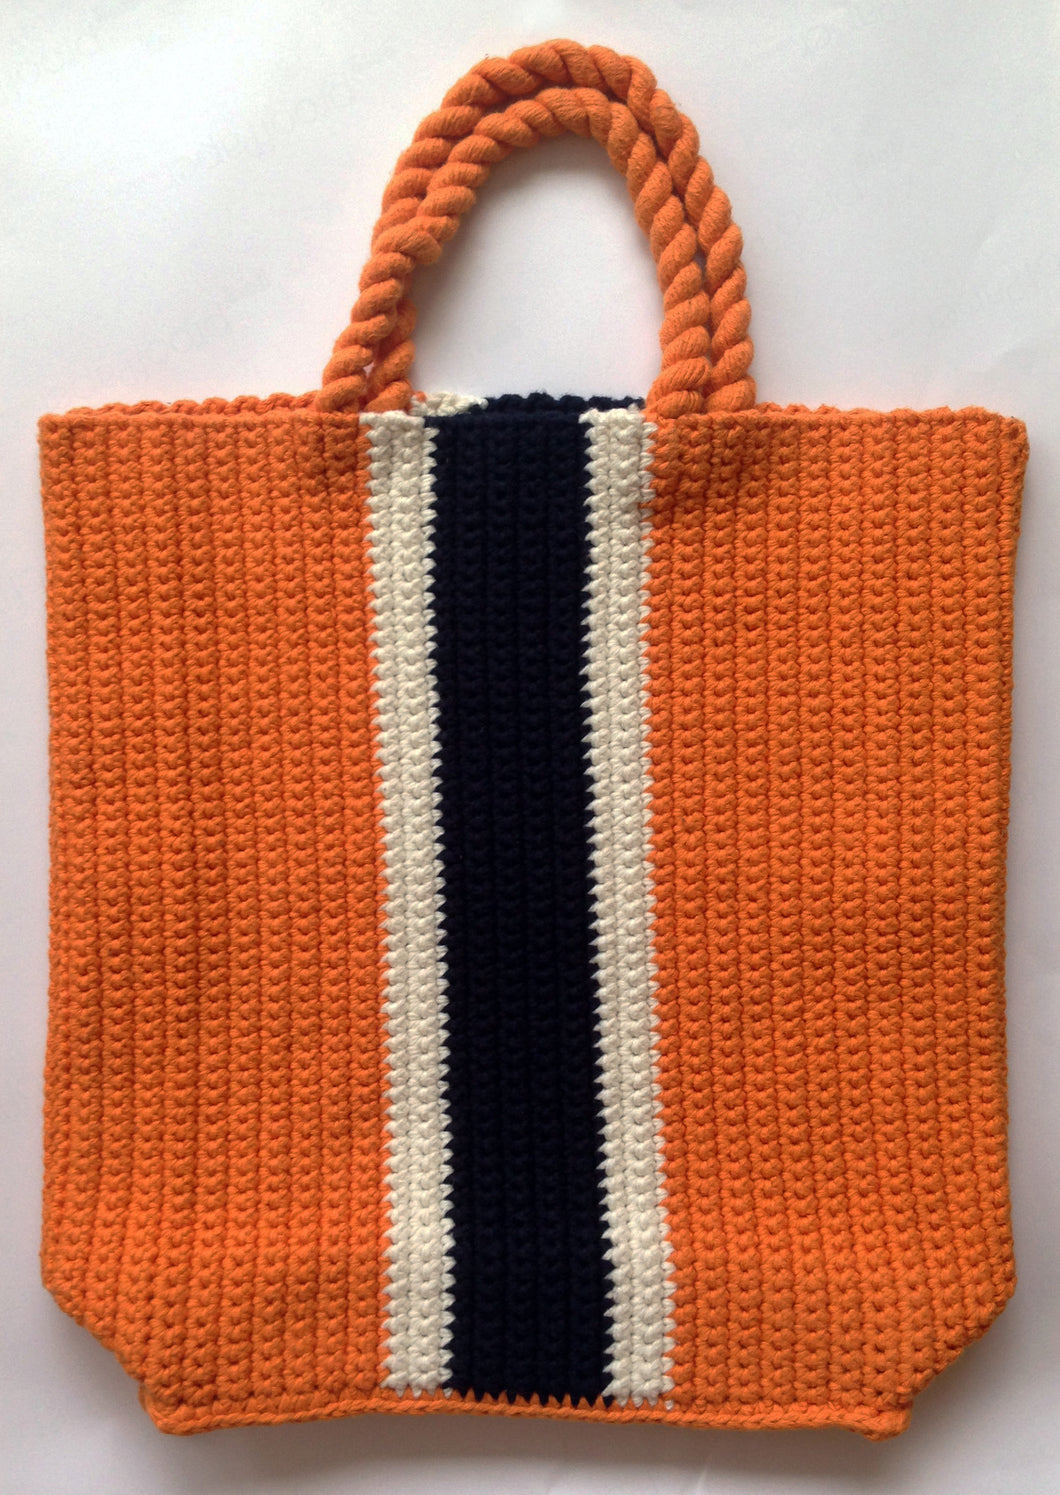 SMALL CROCHET BEACH TOTE - ORANGE